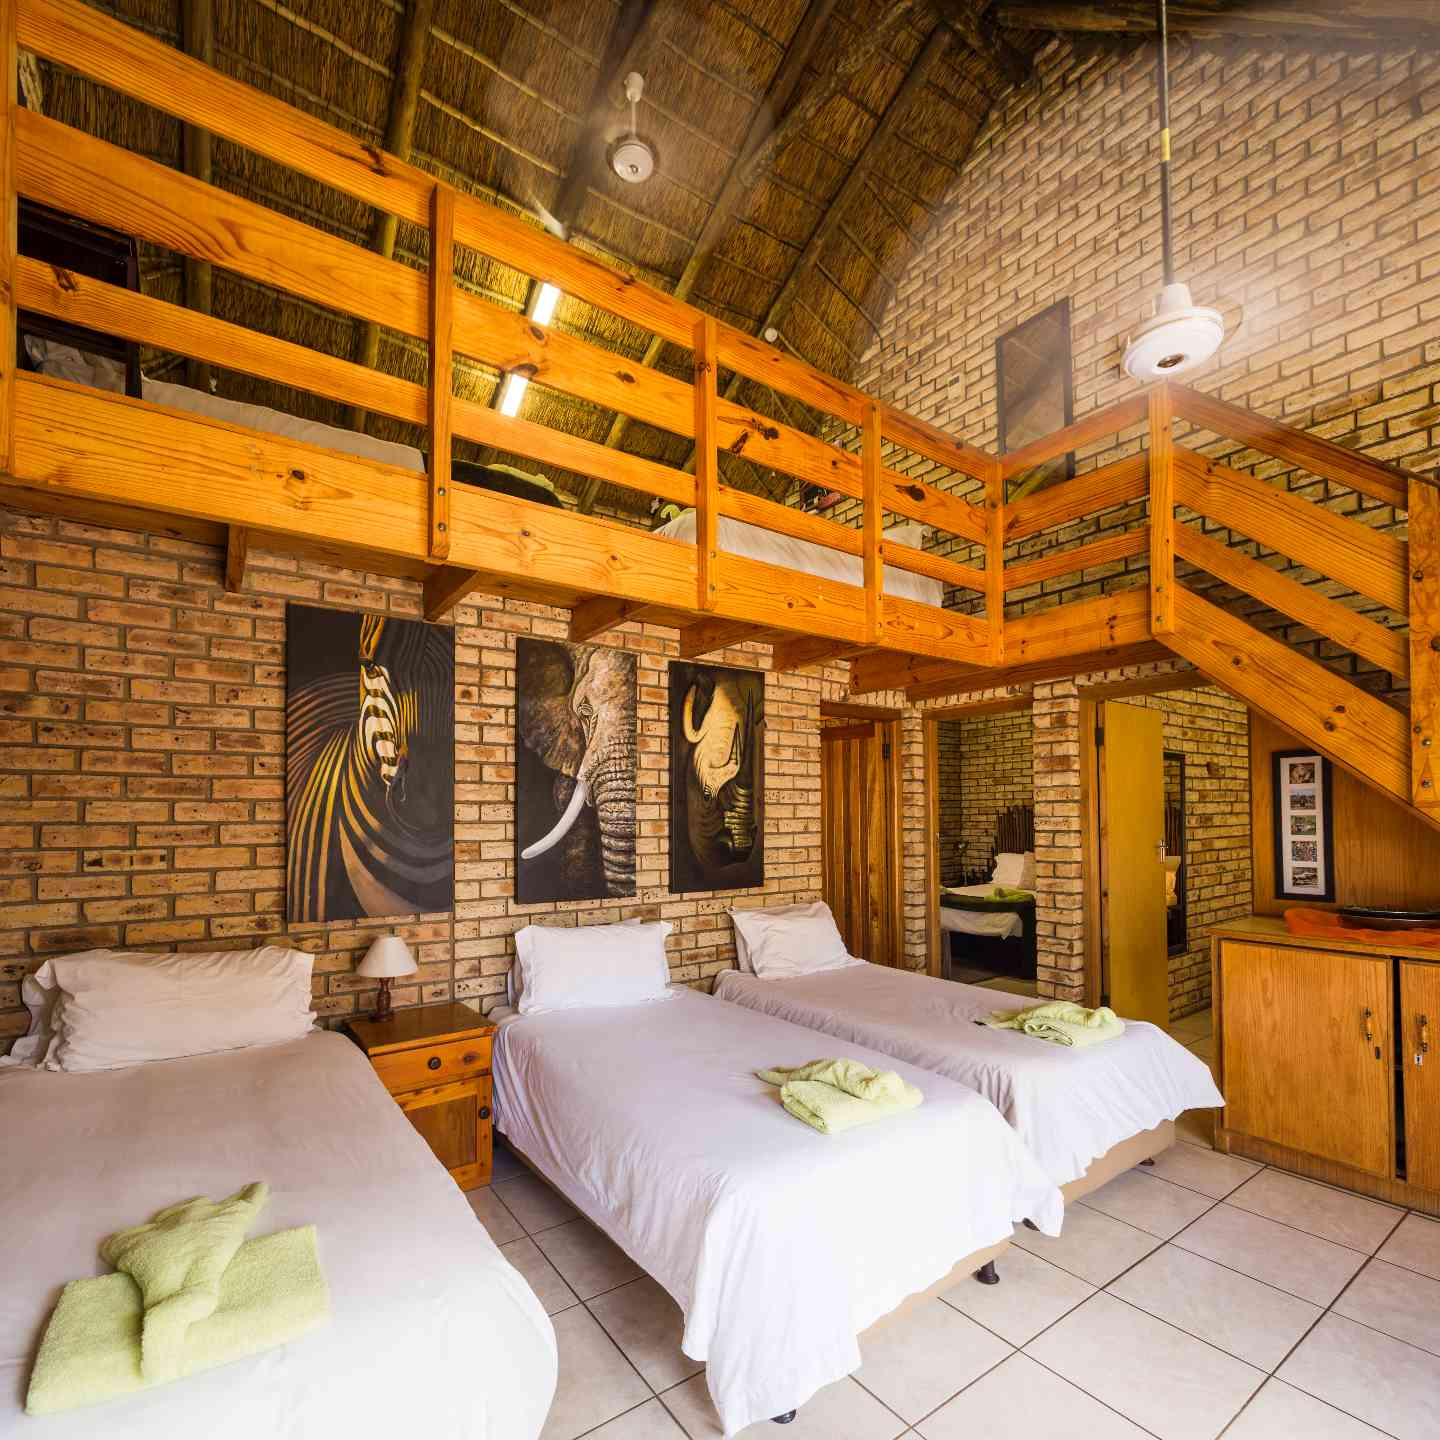 Bona Bona Game Lodge Klerksdorp